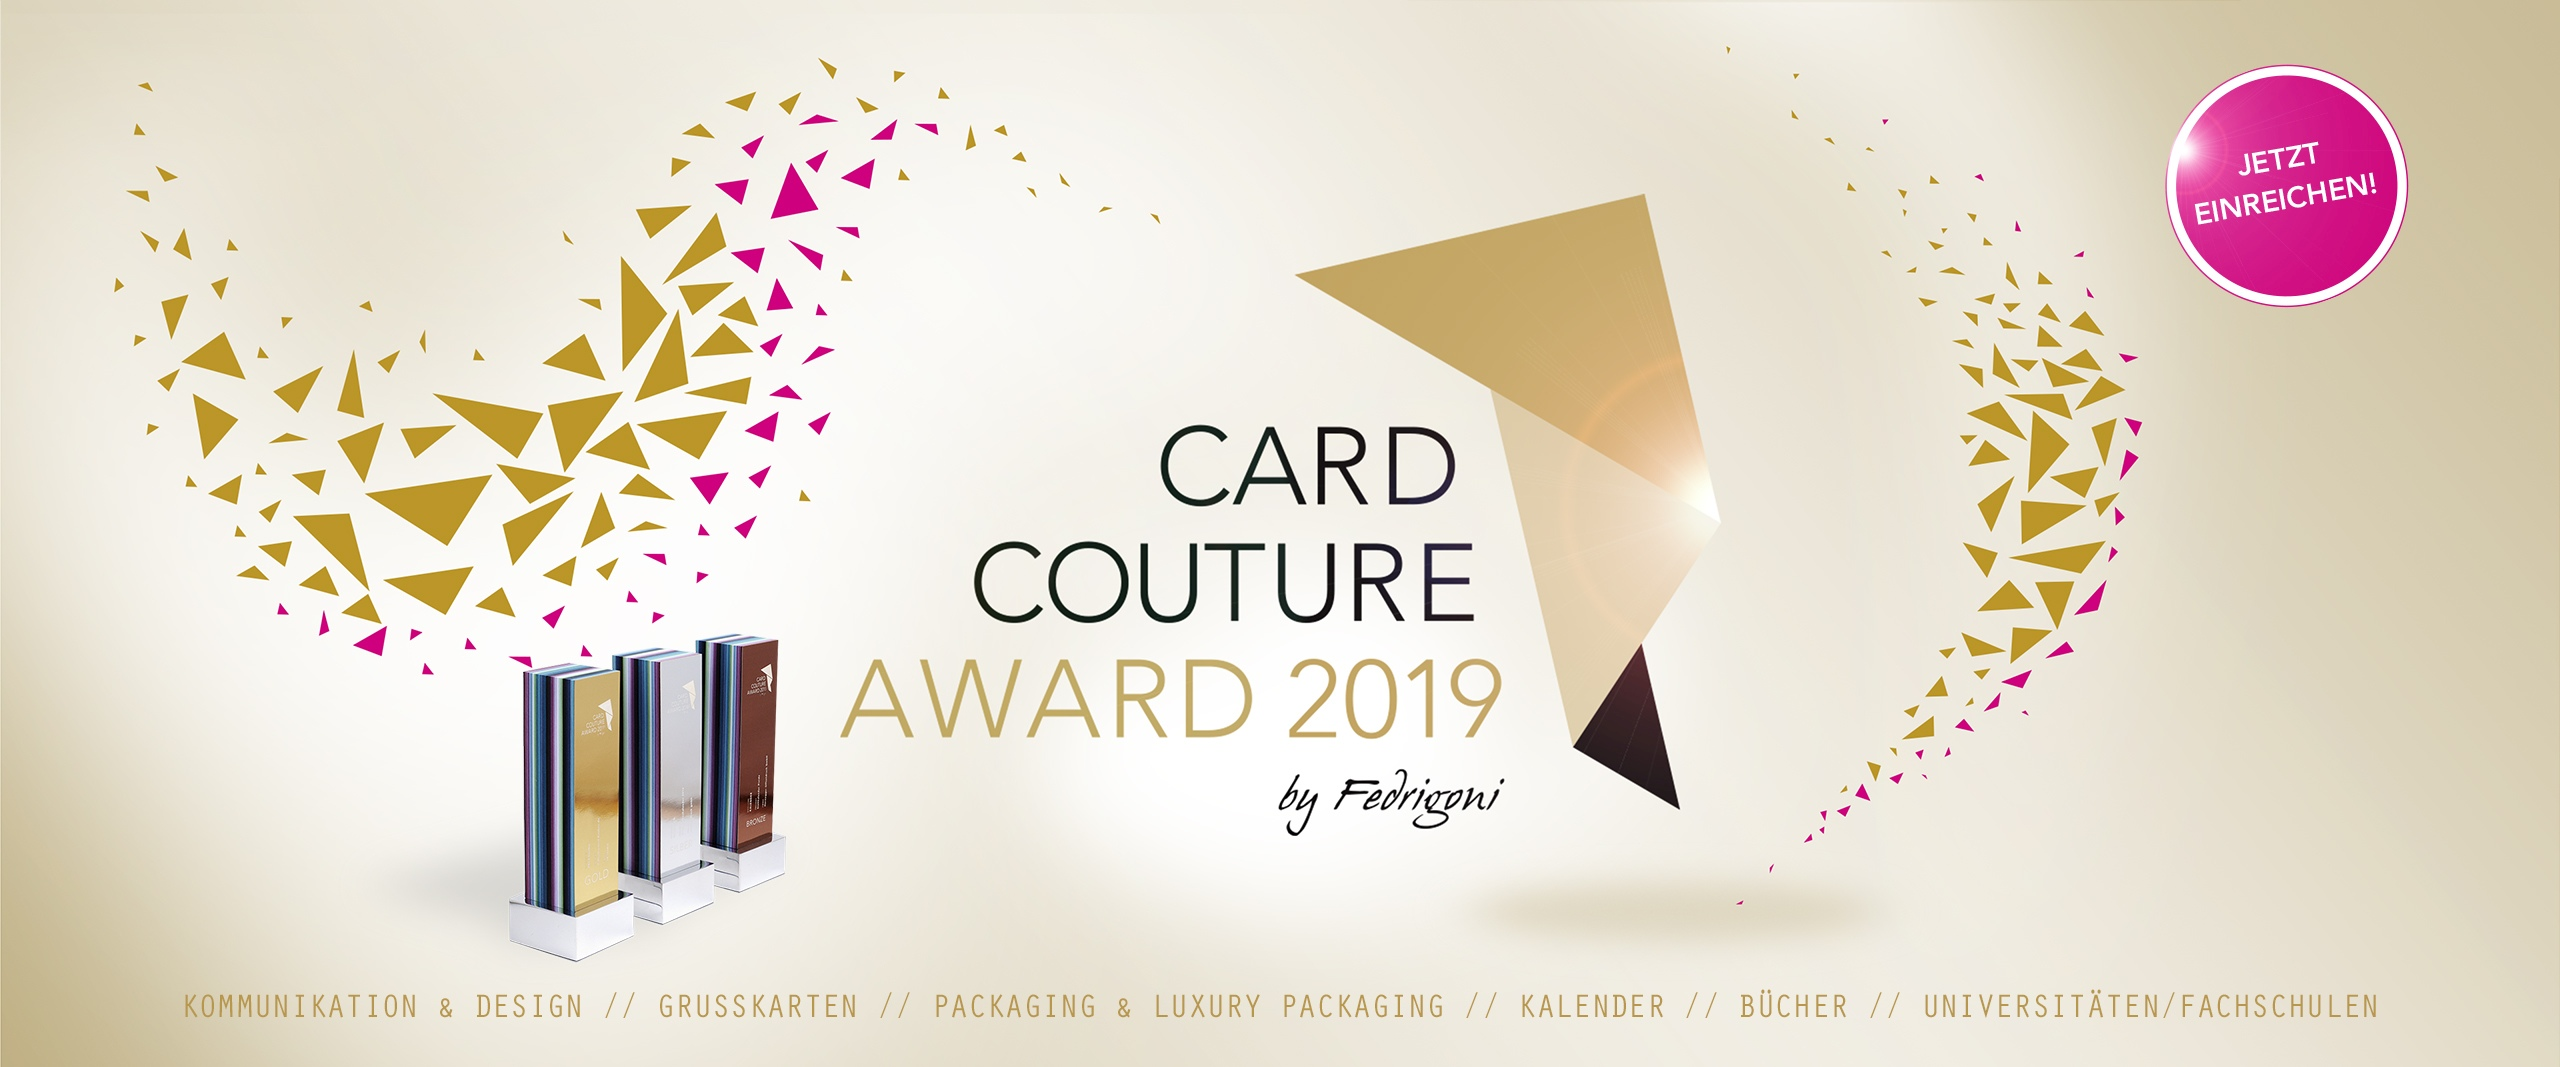 CARD COUTURE AWARD 2019